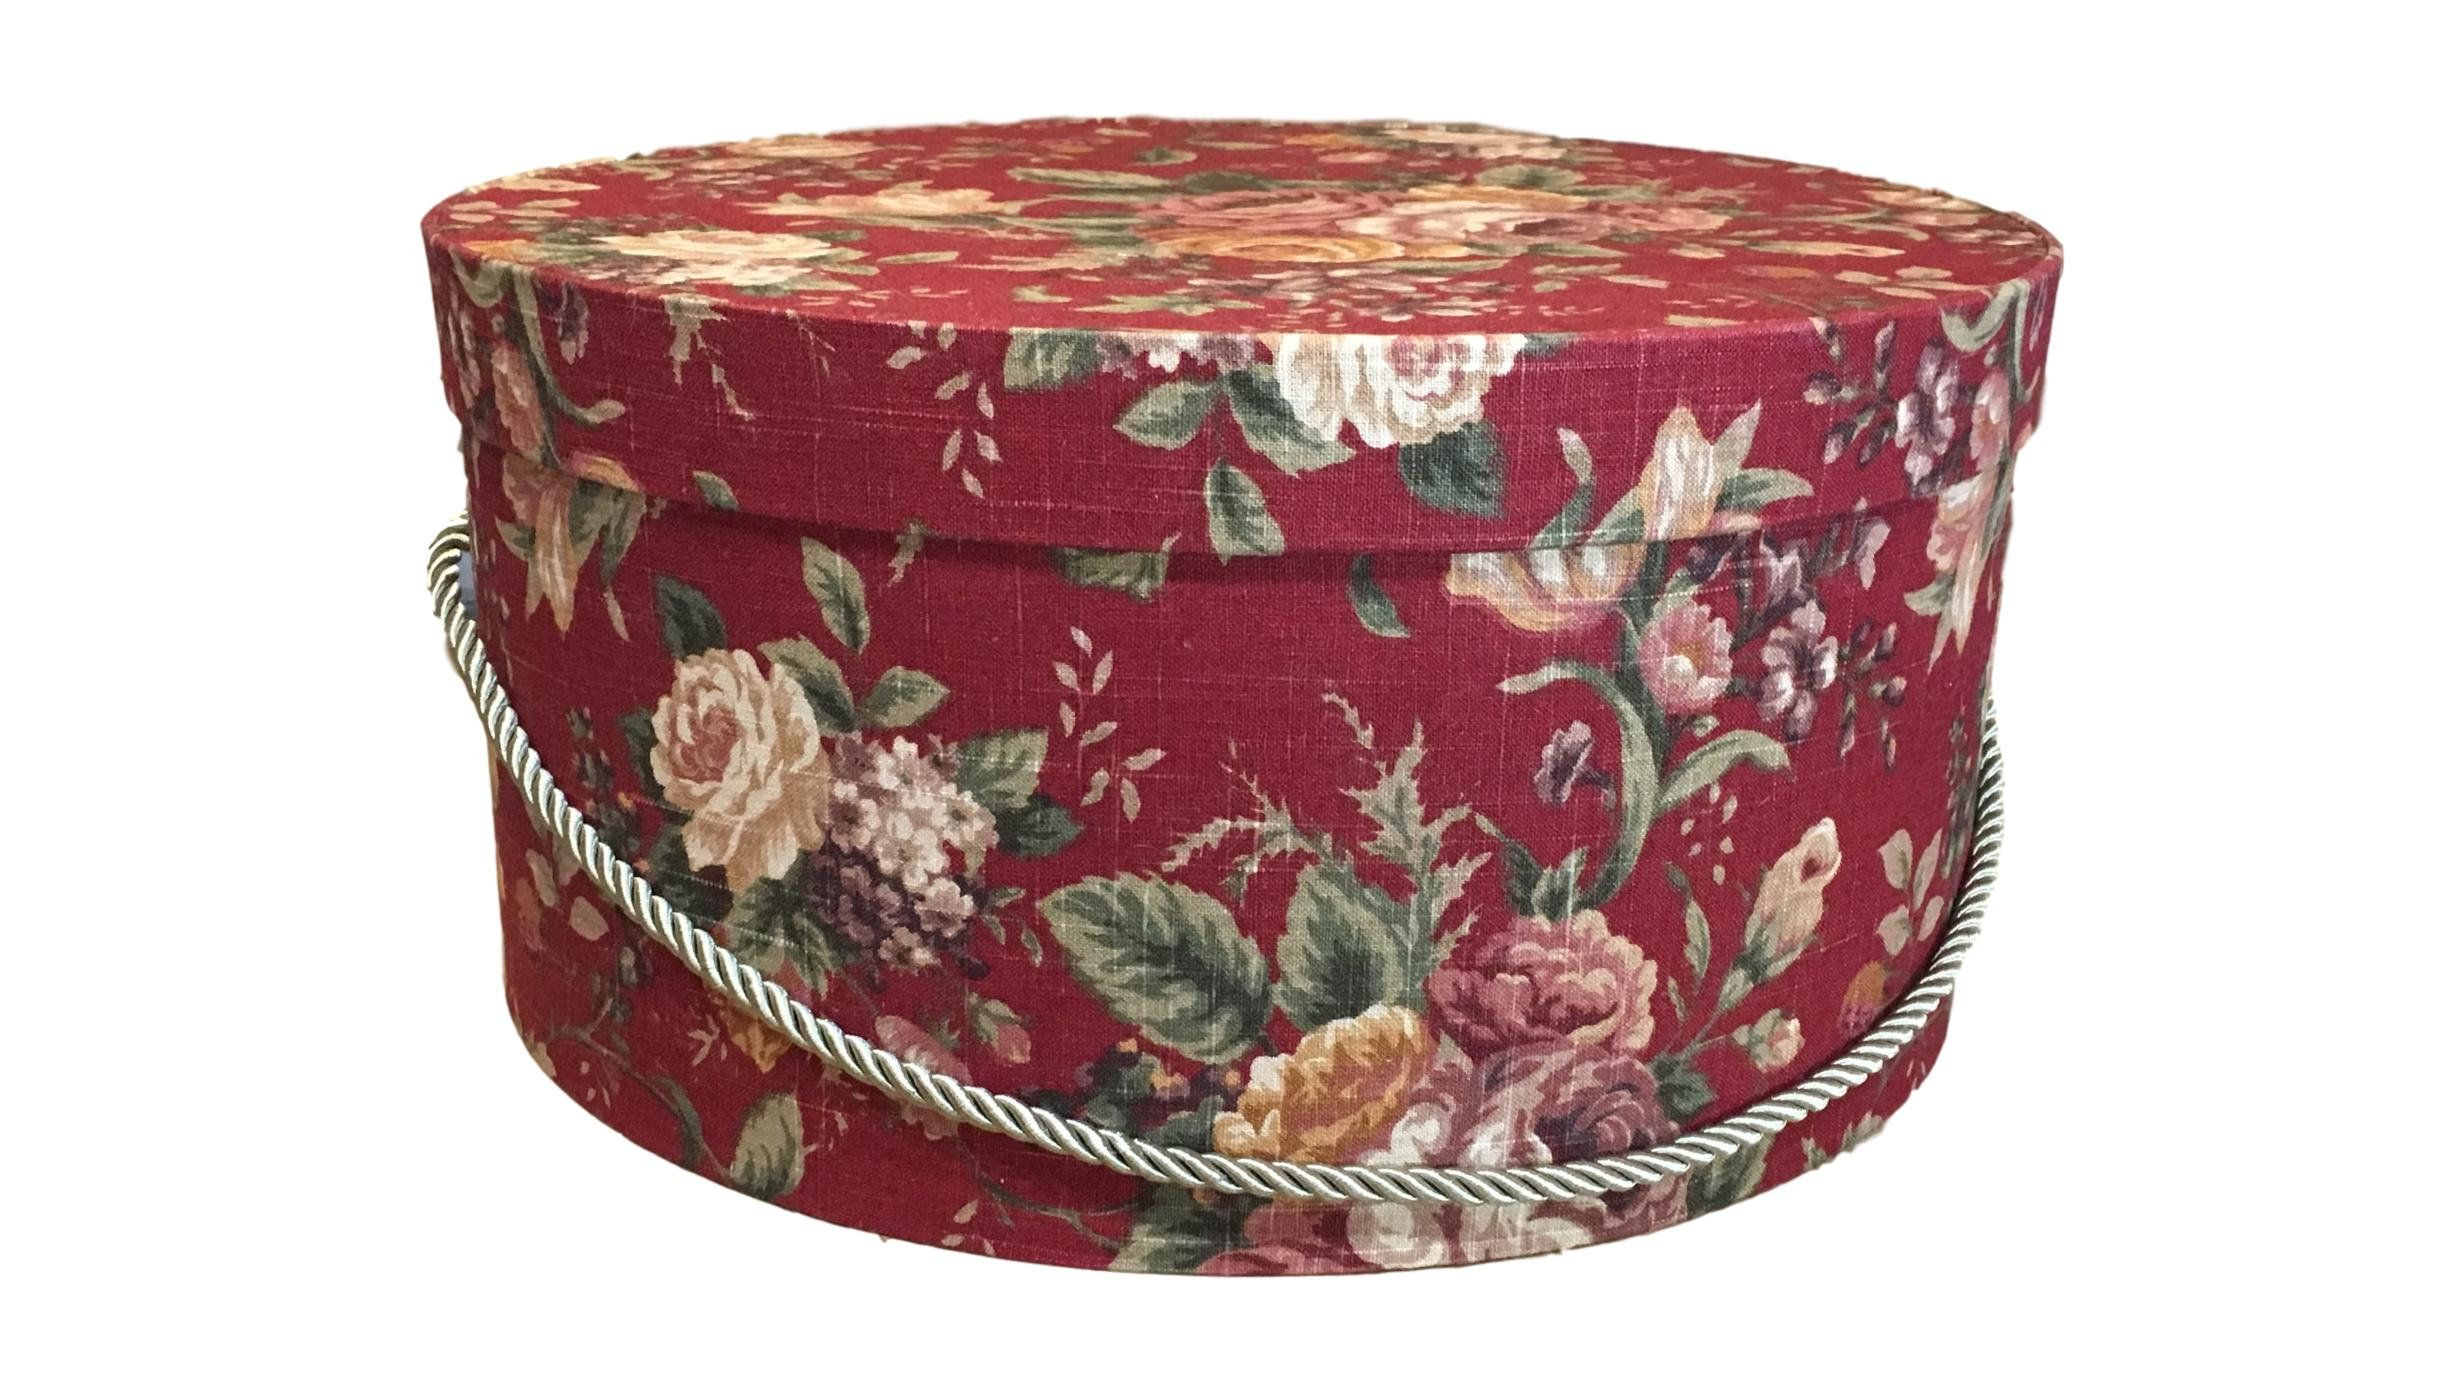 Extra Large Hat Box In Red Floral Large Decorative Fabric Covered